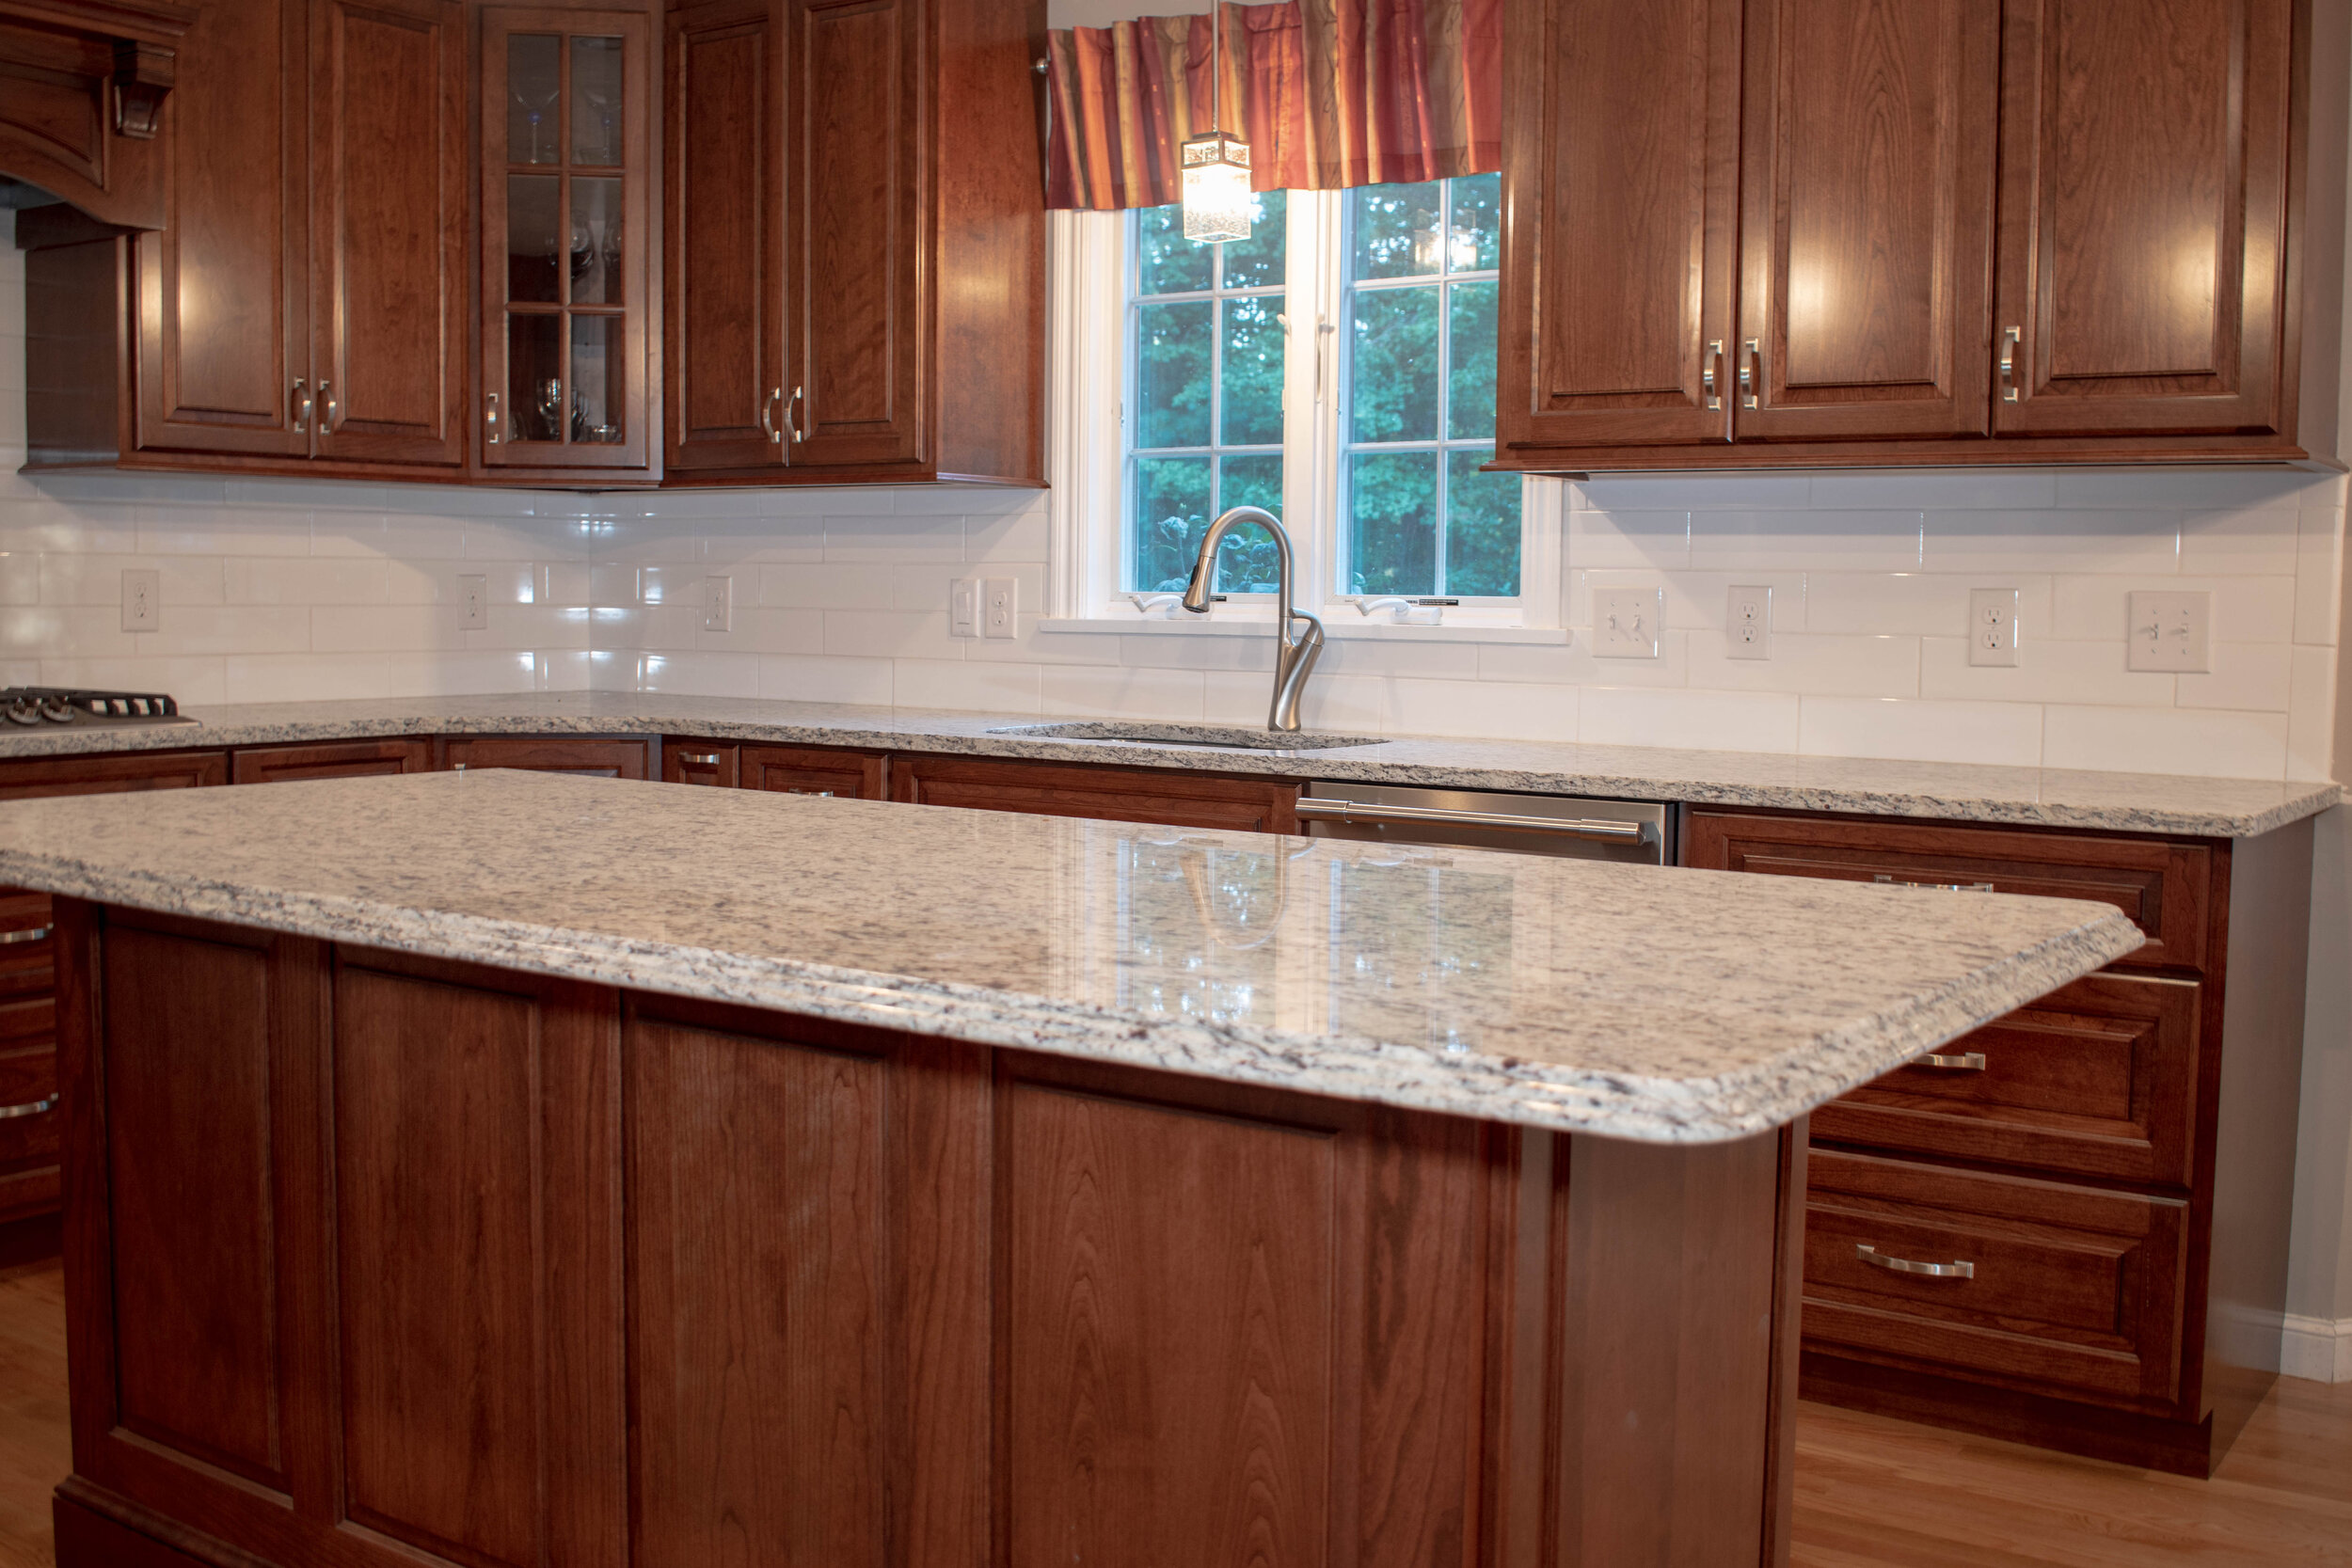 Material: SF / White Ornamental  Thickness, Finish & Stone Type: 3CM Polished Granite  Edge:  Main Counters: Eased Island: Waterfall  Sink: KB18-SP4